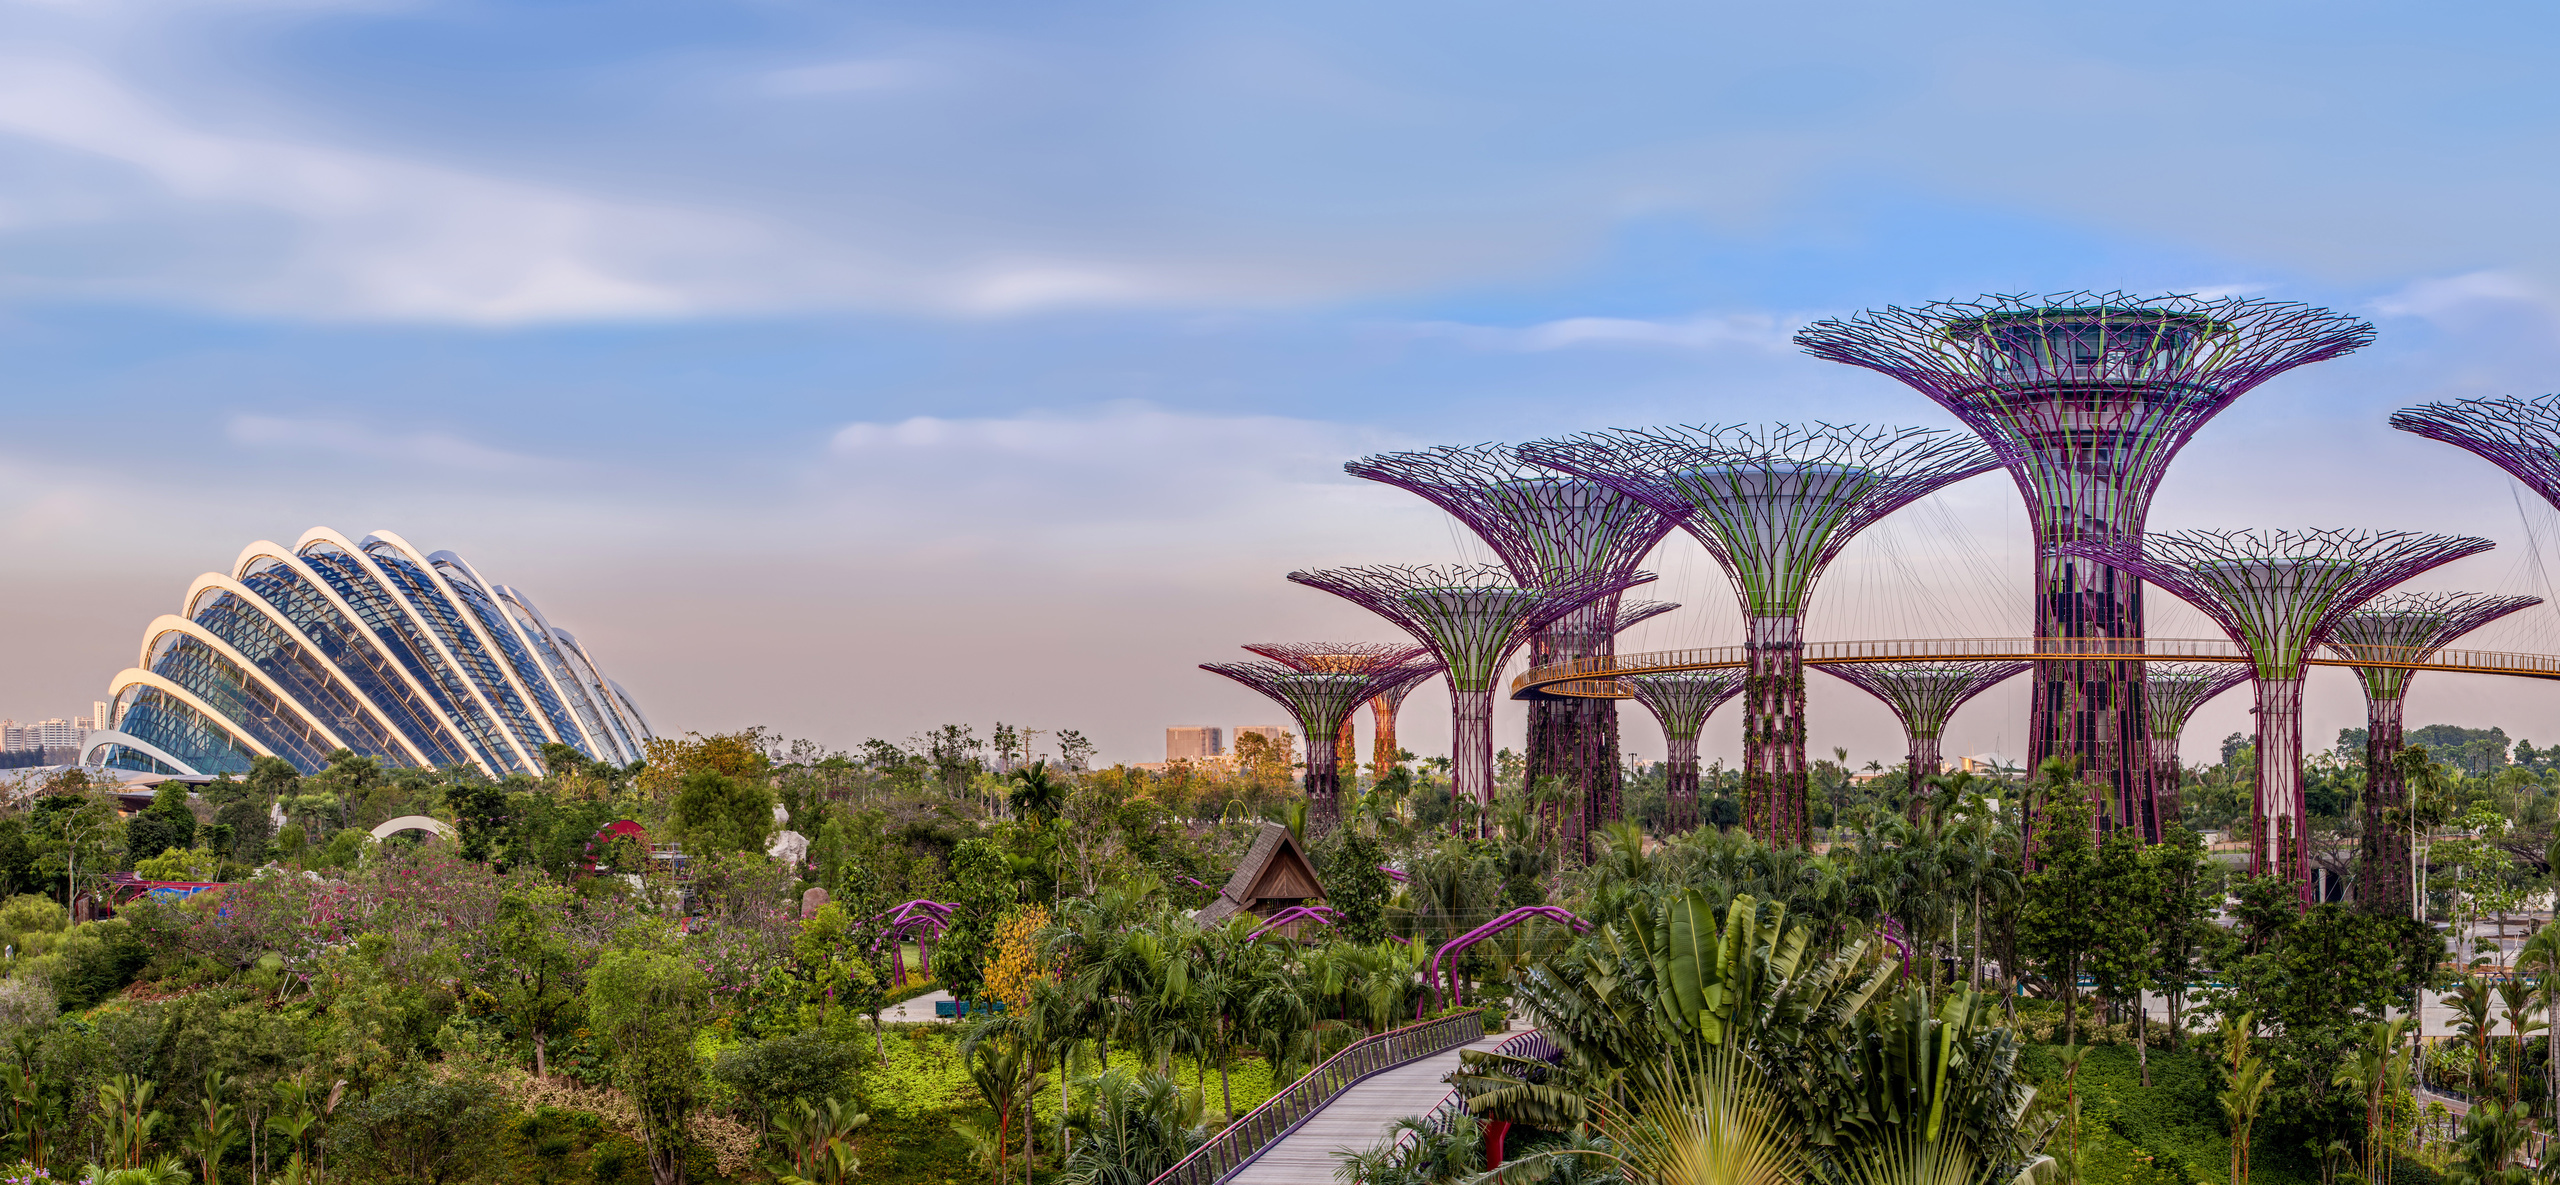 GARDENS BY THE BAY - SINGAPORE | Thetravelshots